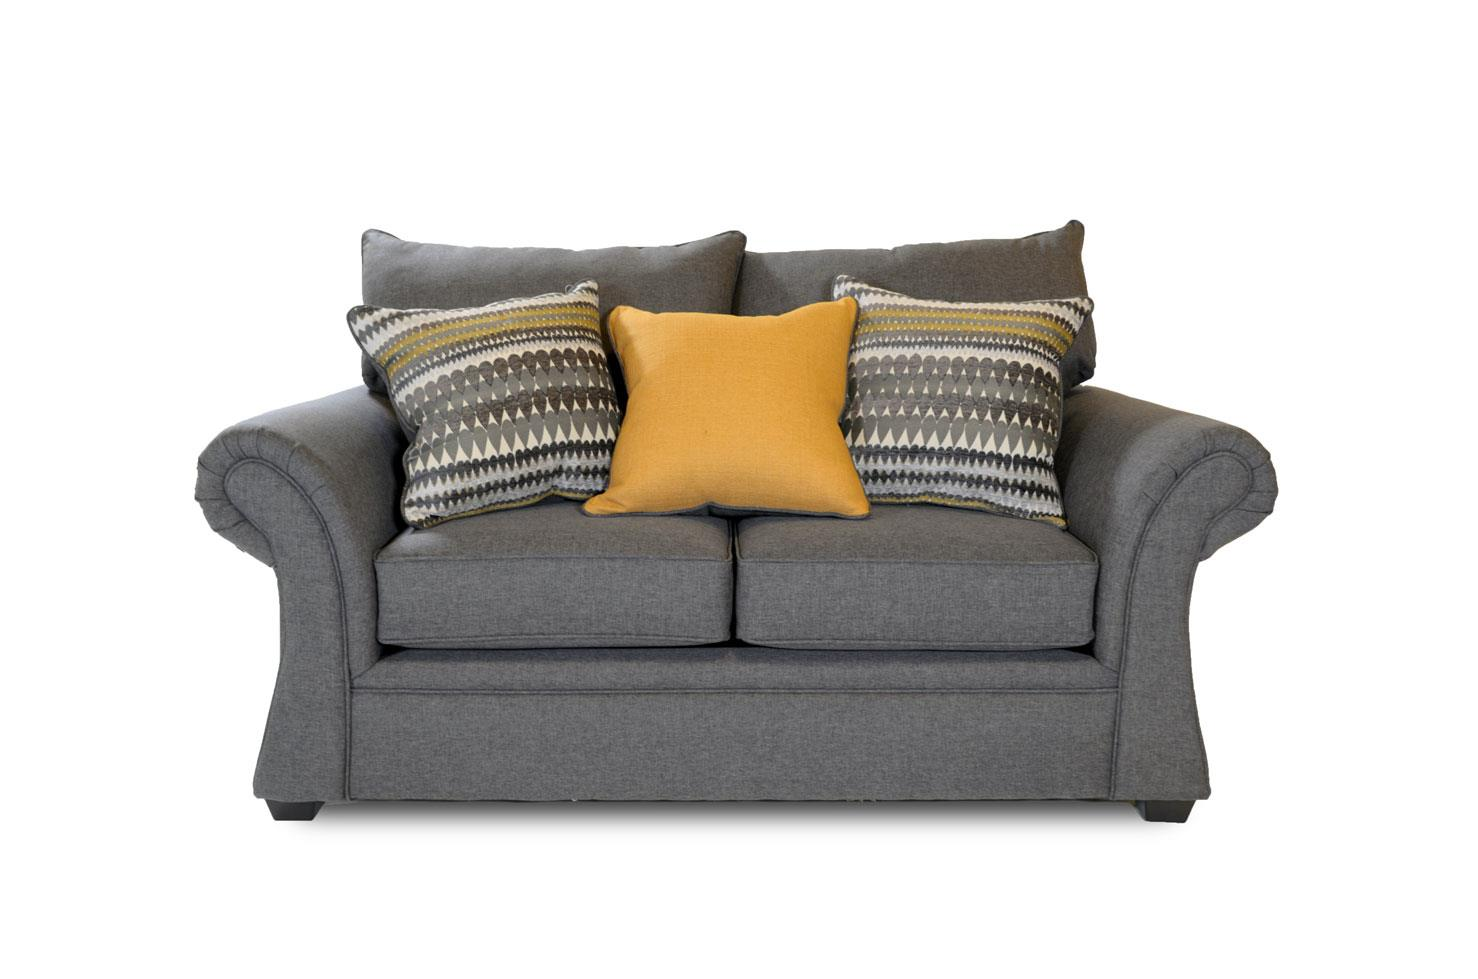 Washington Furniture Jitterbug Jitterbug Gray Loveseat - Item Number: 1562